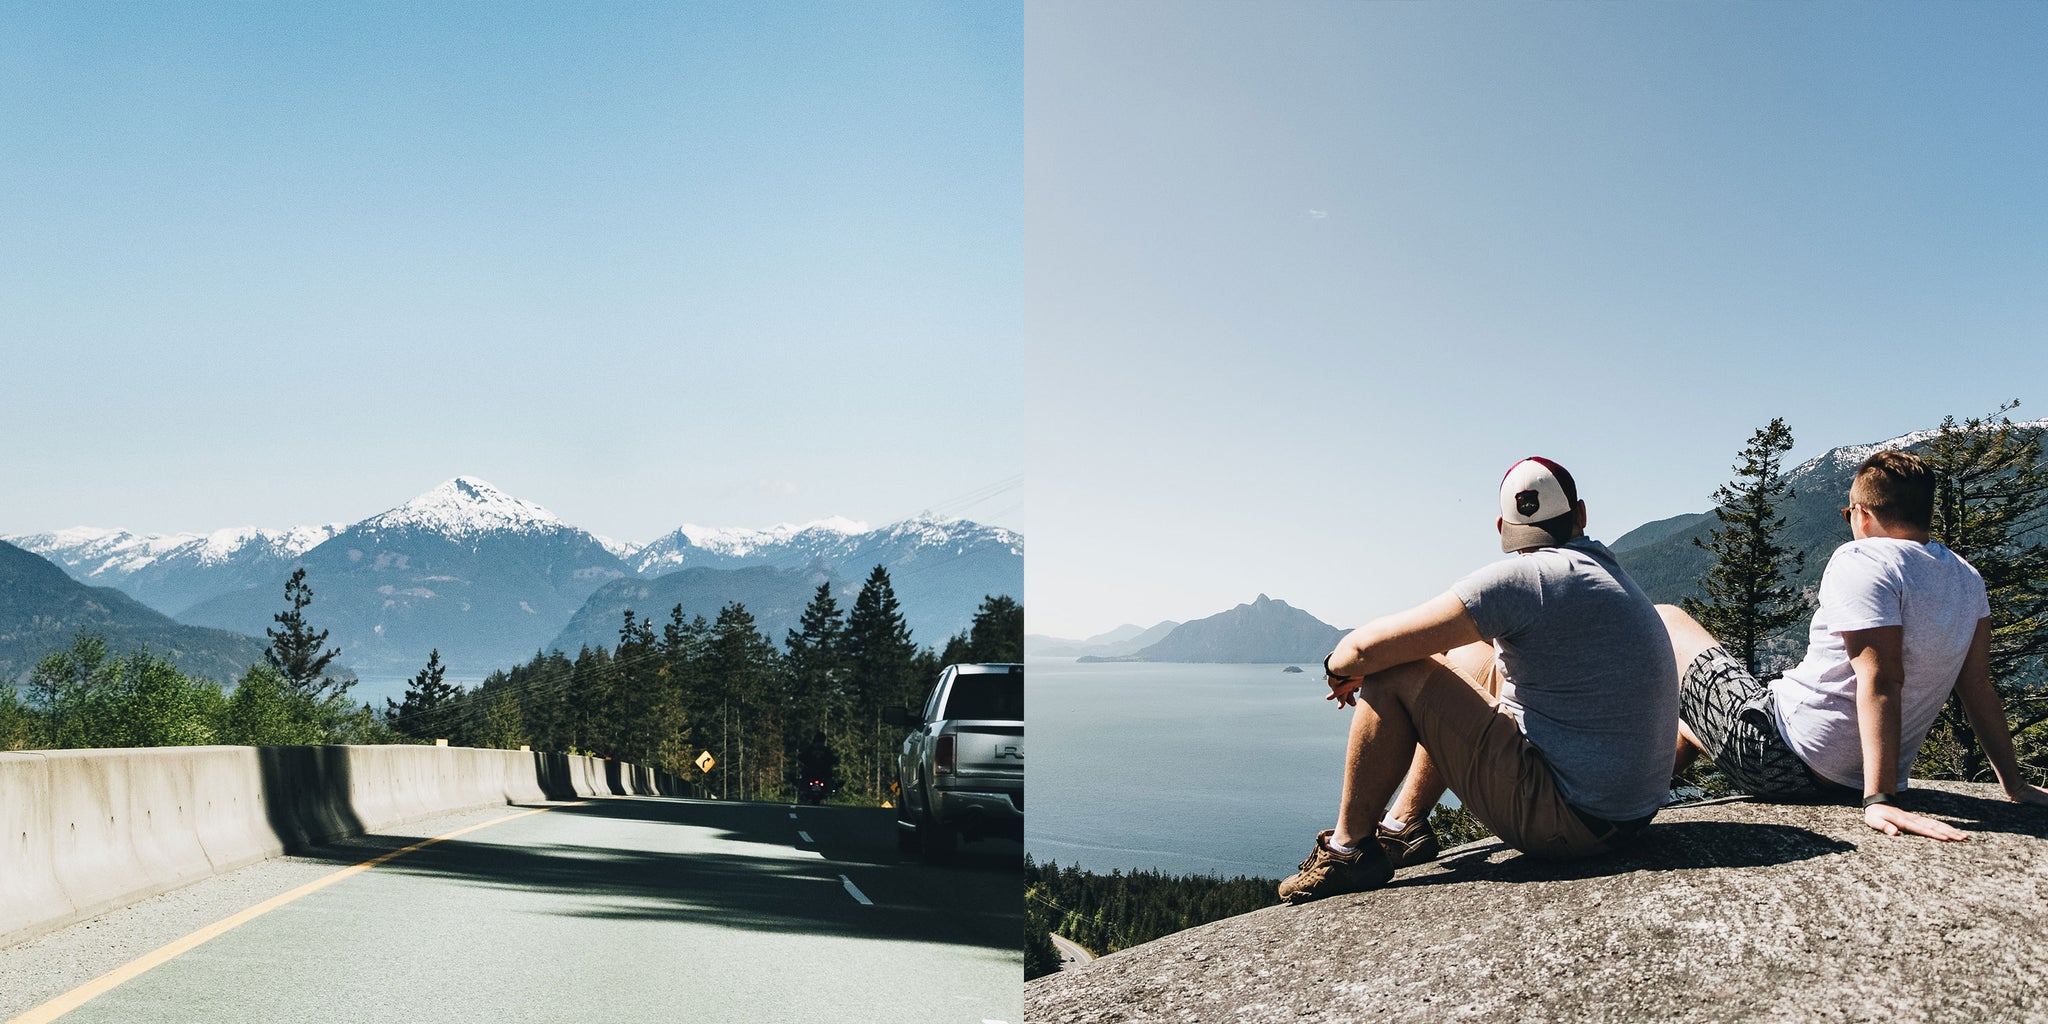 Bather's Excellent Adventures in Vancouver with Brandon Lind | Driving up the Sea to Sky Highway and hiking Murrin Provincial Park